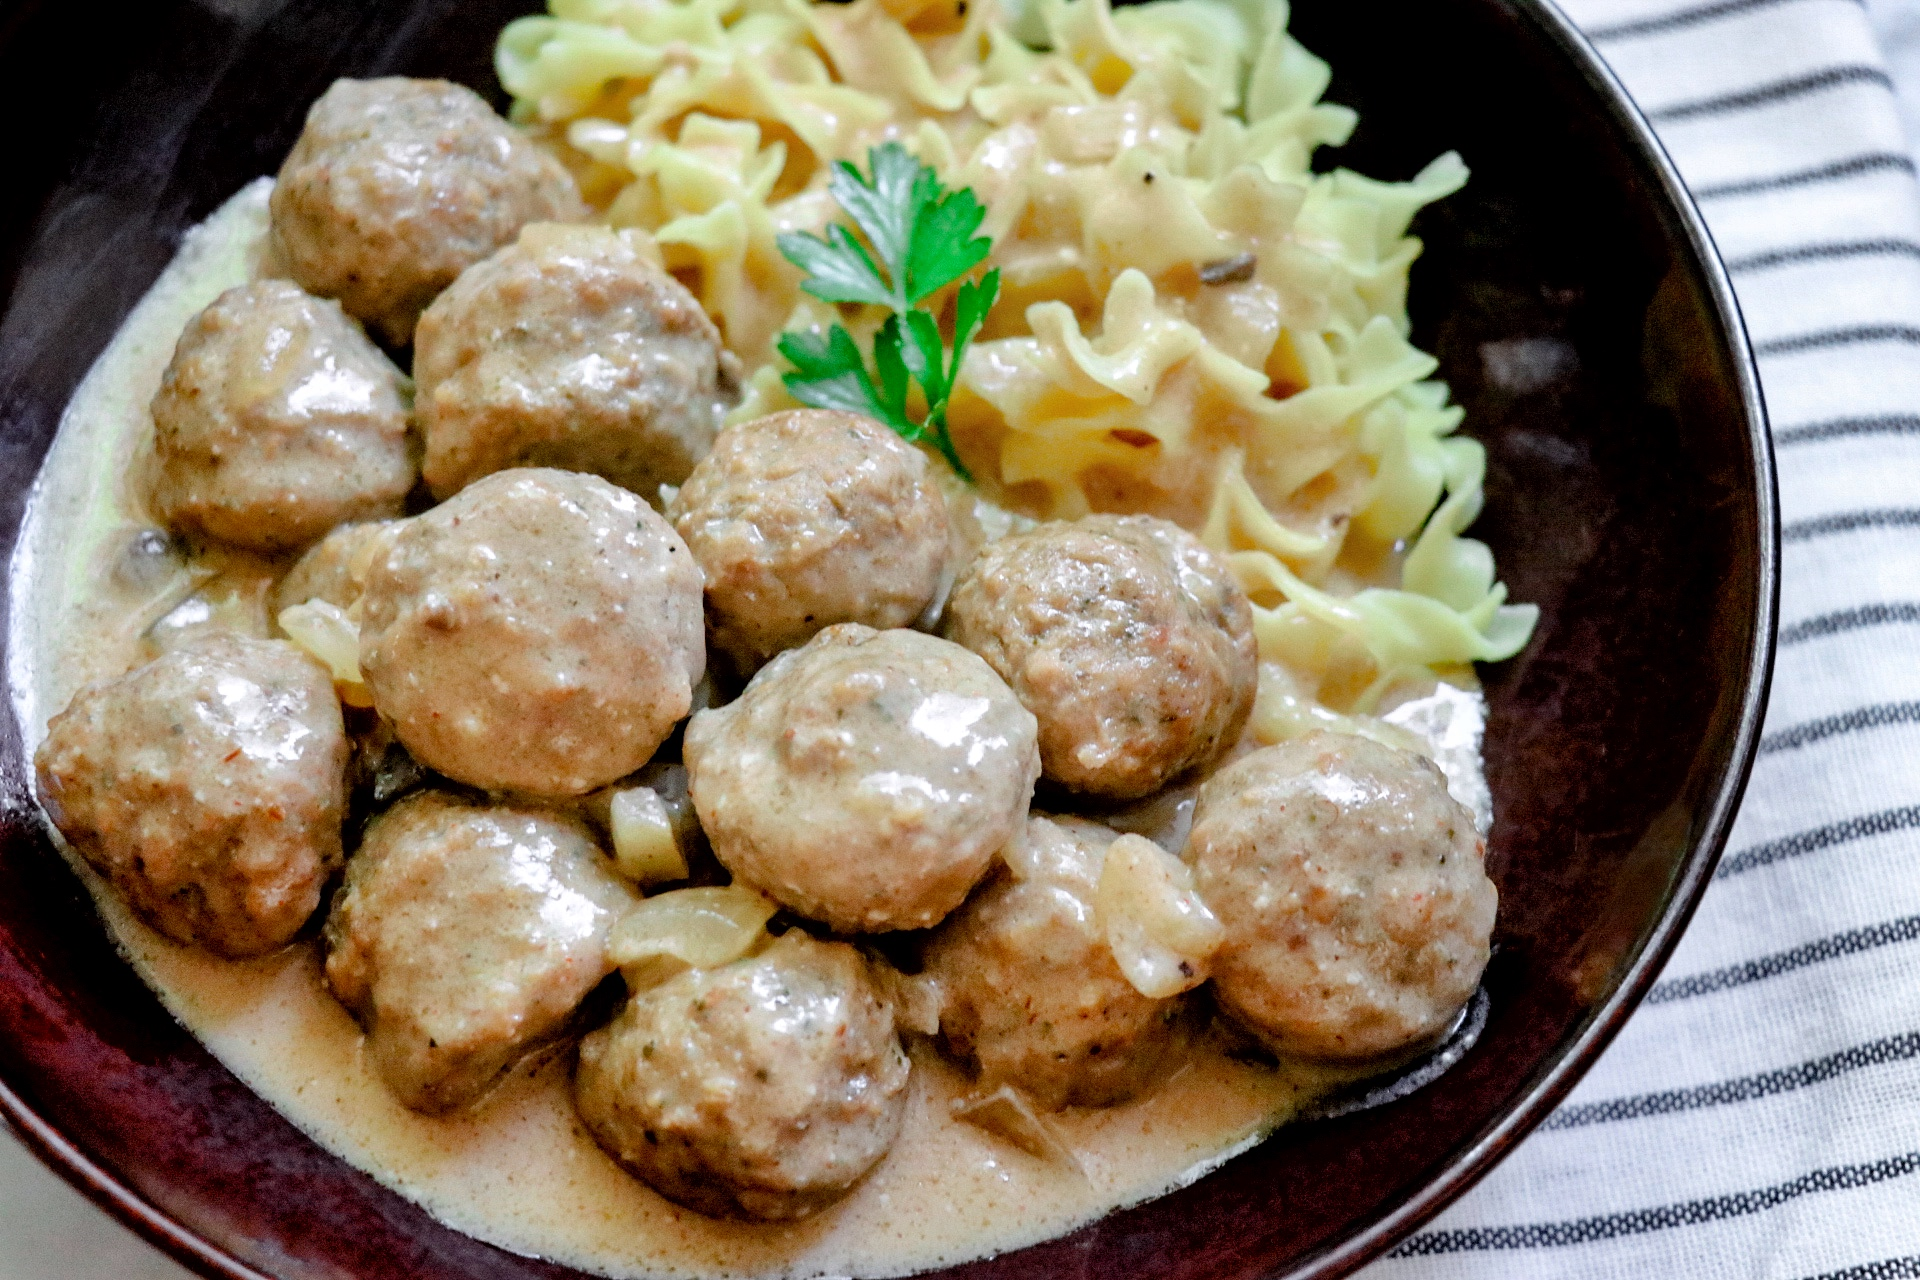 overhead view of a bowl of homemade Easy Slow Cooker Swedish Meatballs served with egg noodles